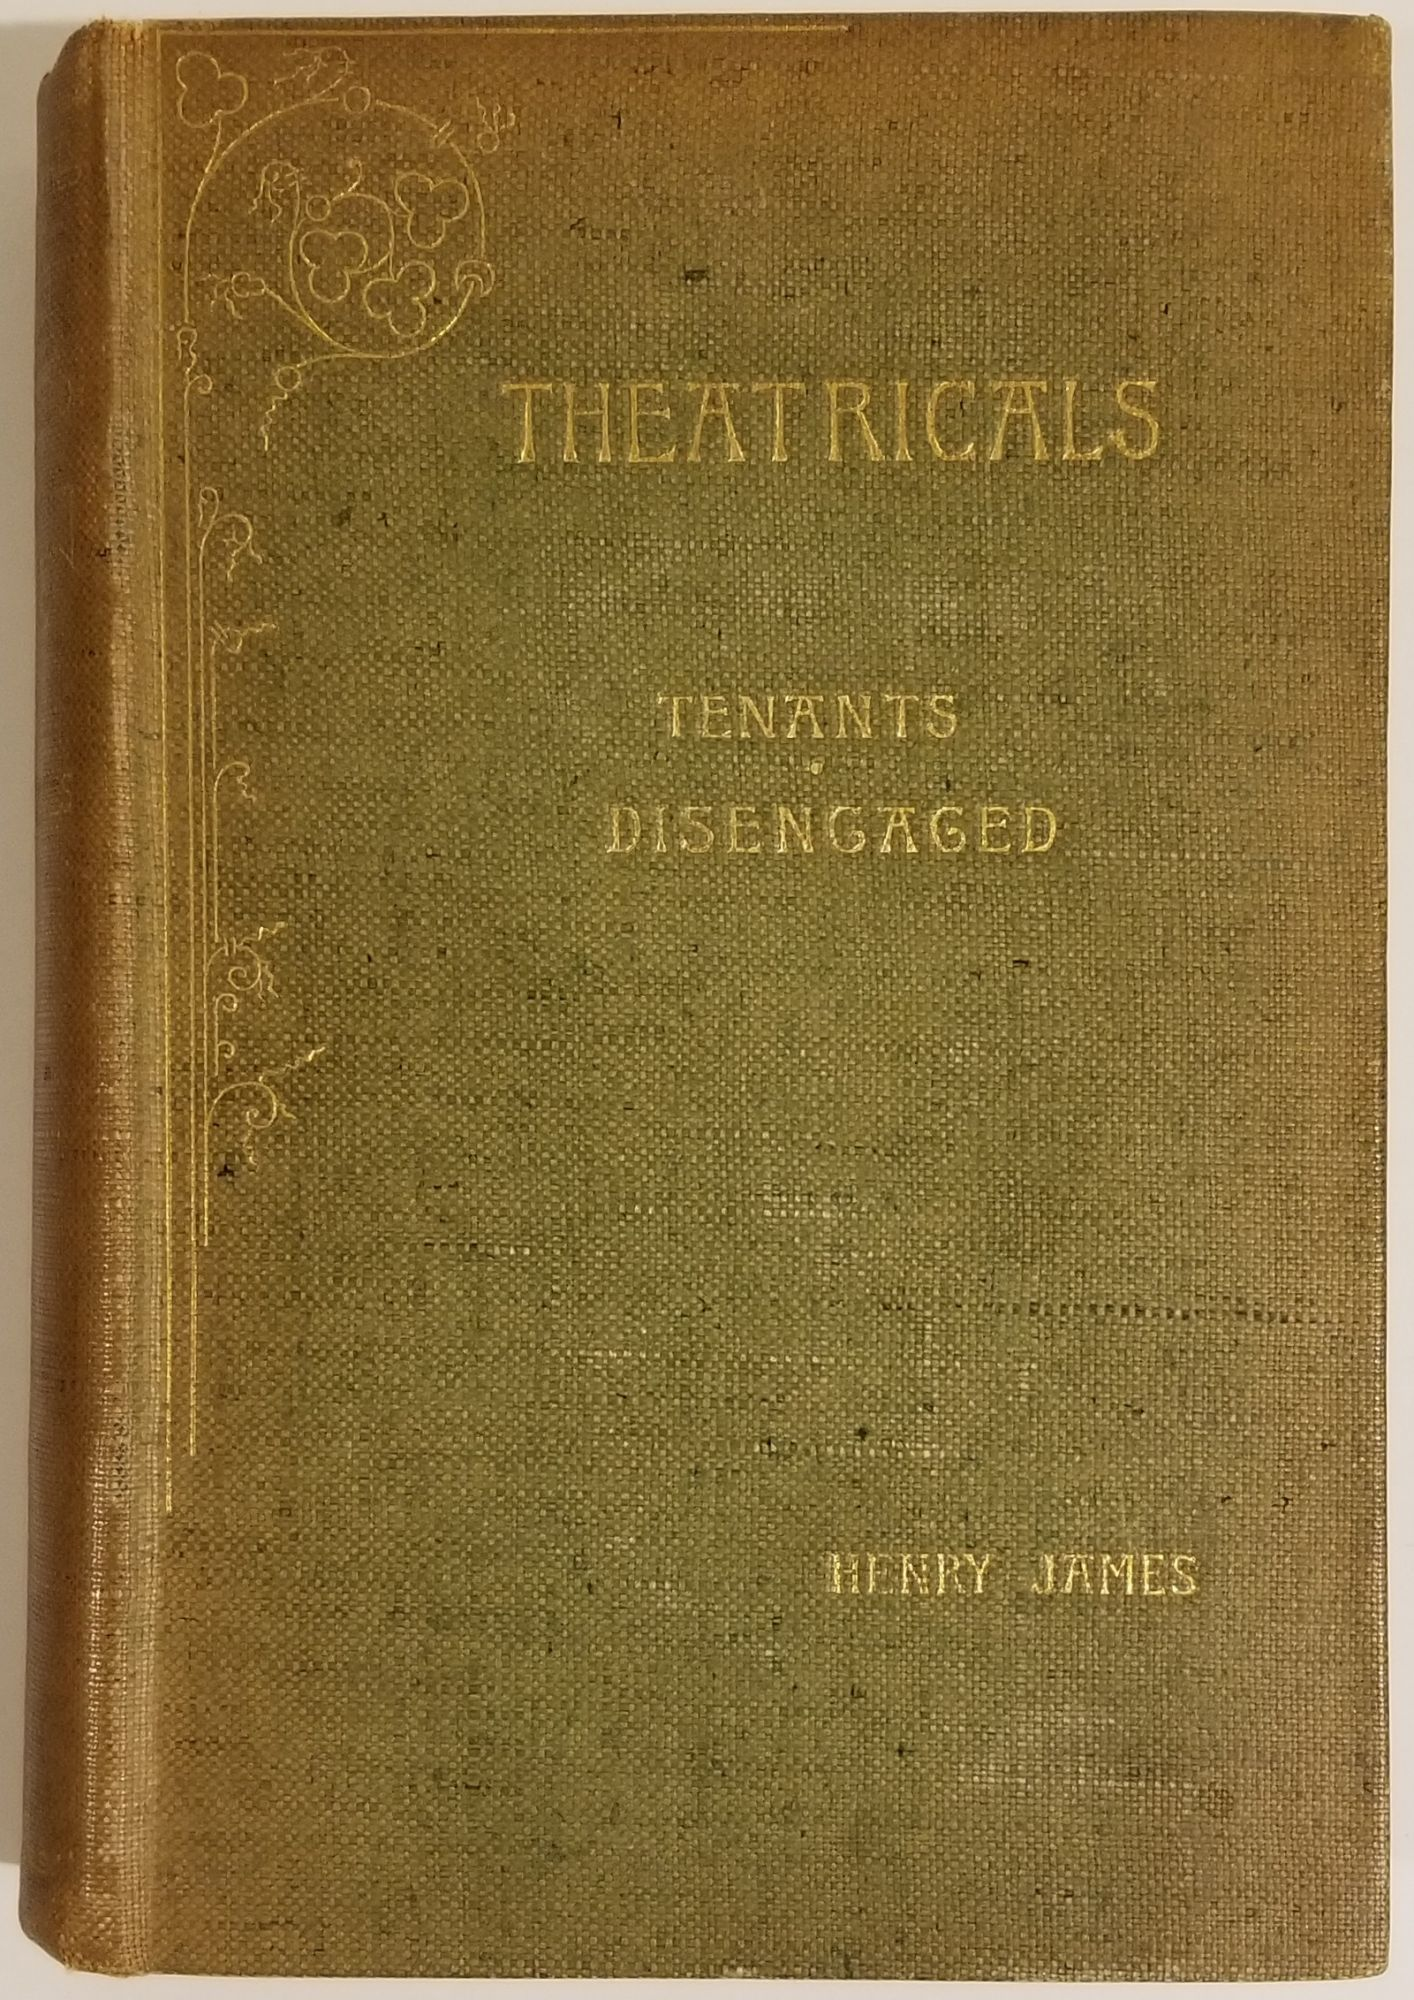 THEATRICALS: TWO COMEDIES: TENANTS AND DISENGAGED [First American Edition]. Henry James.